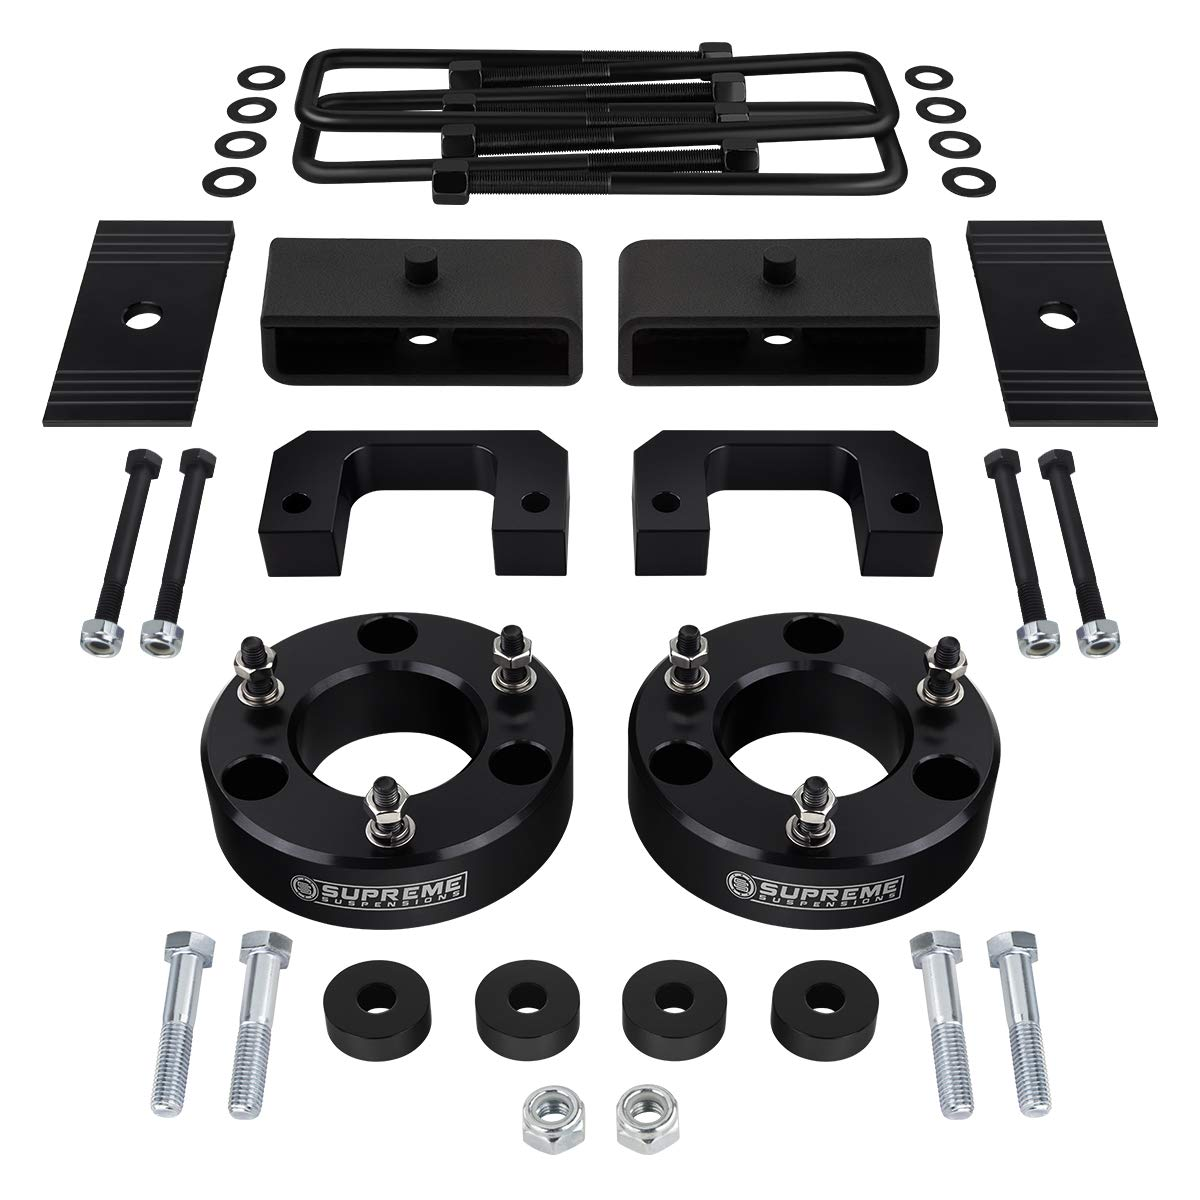 3 Front and 2 Rear Suspension Leveling lift kit for 2007-2018 for Chevrolet Silverado 1500 GMC Sierra 1500